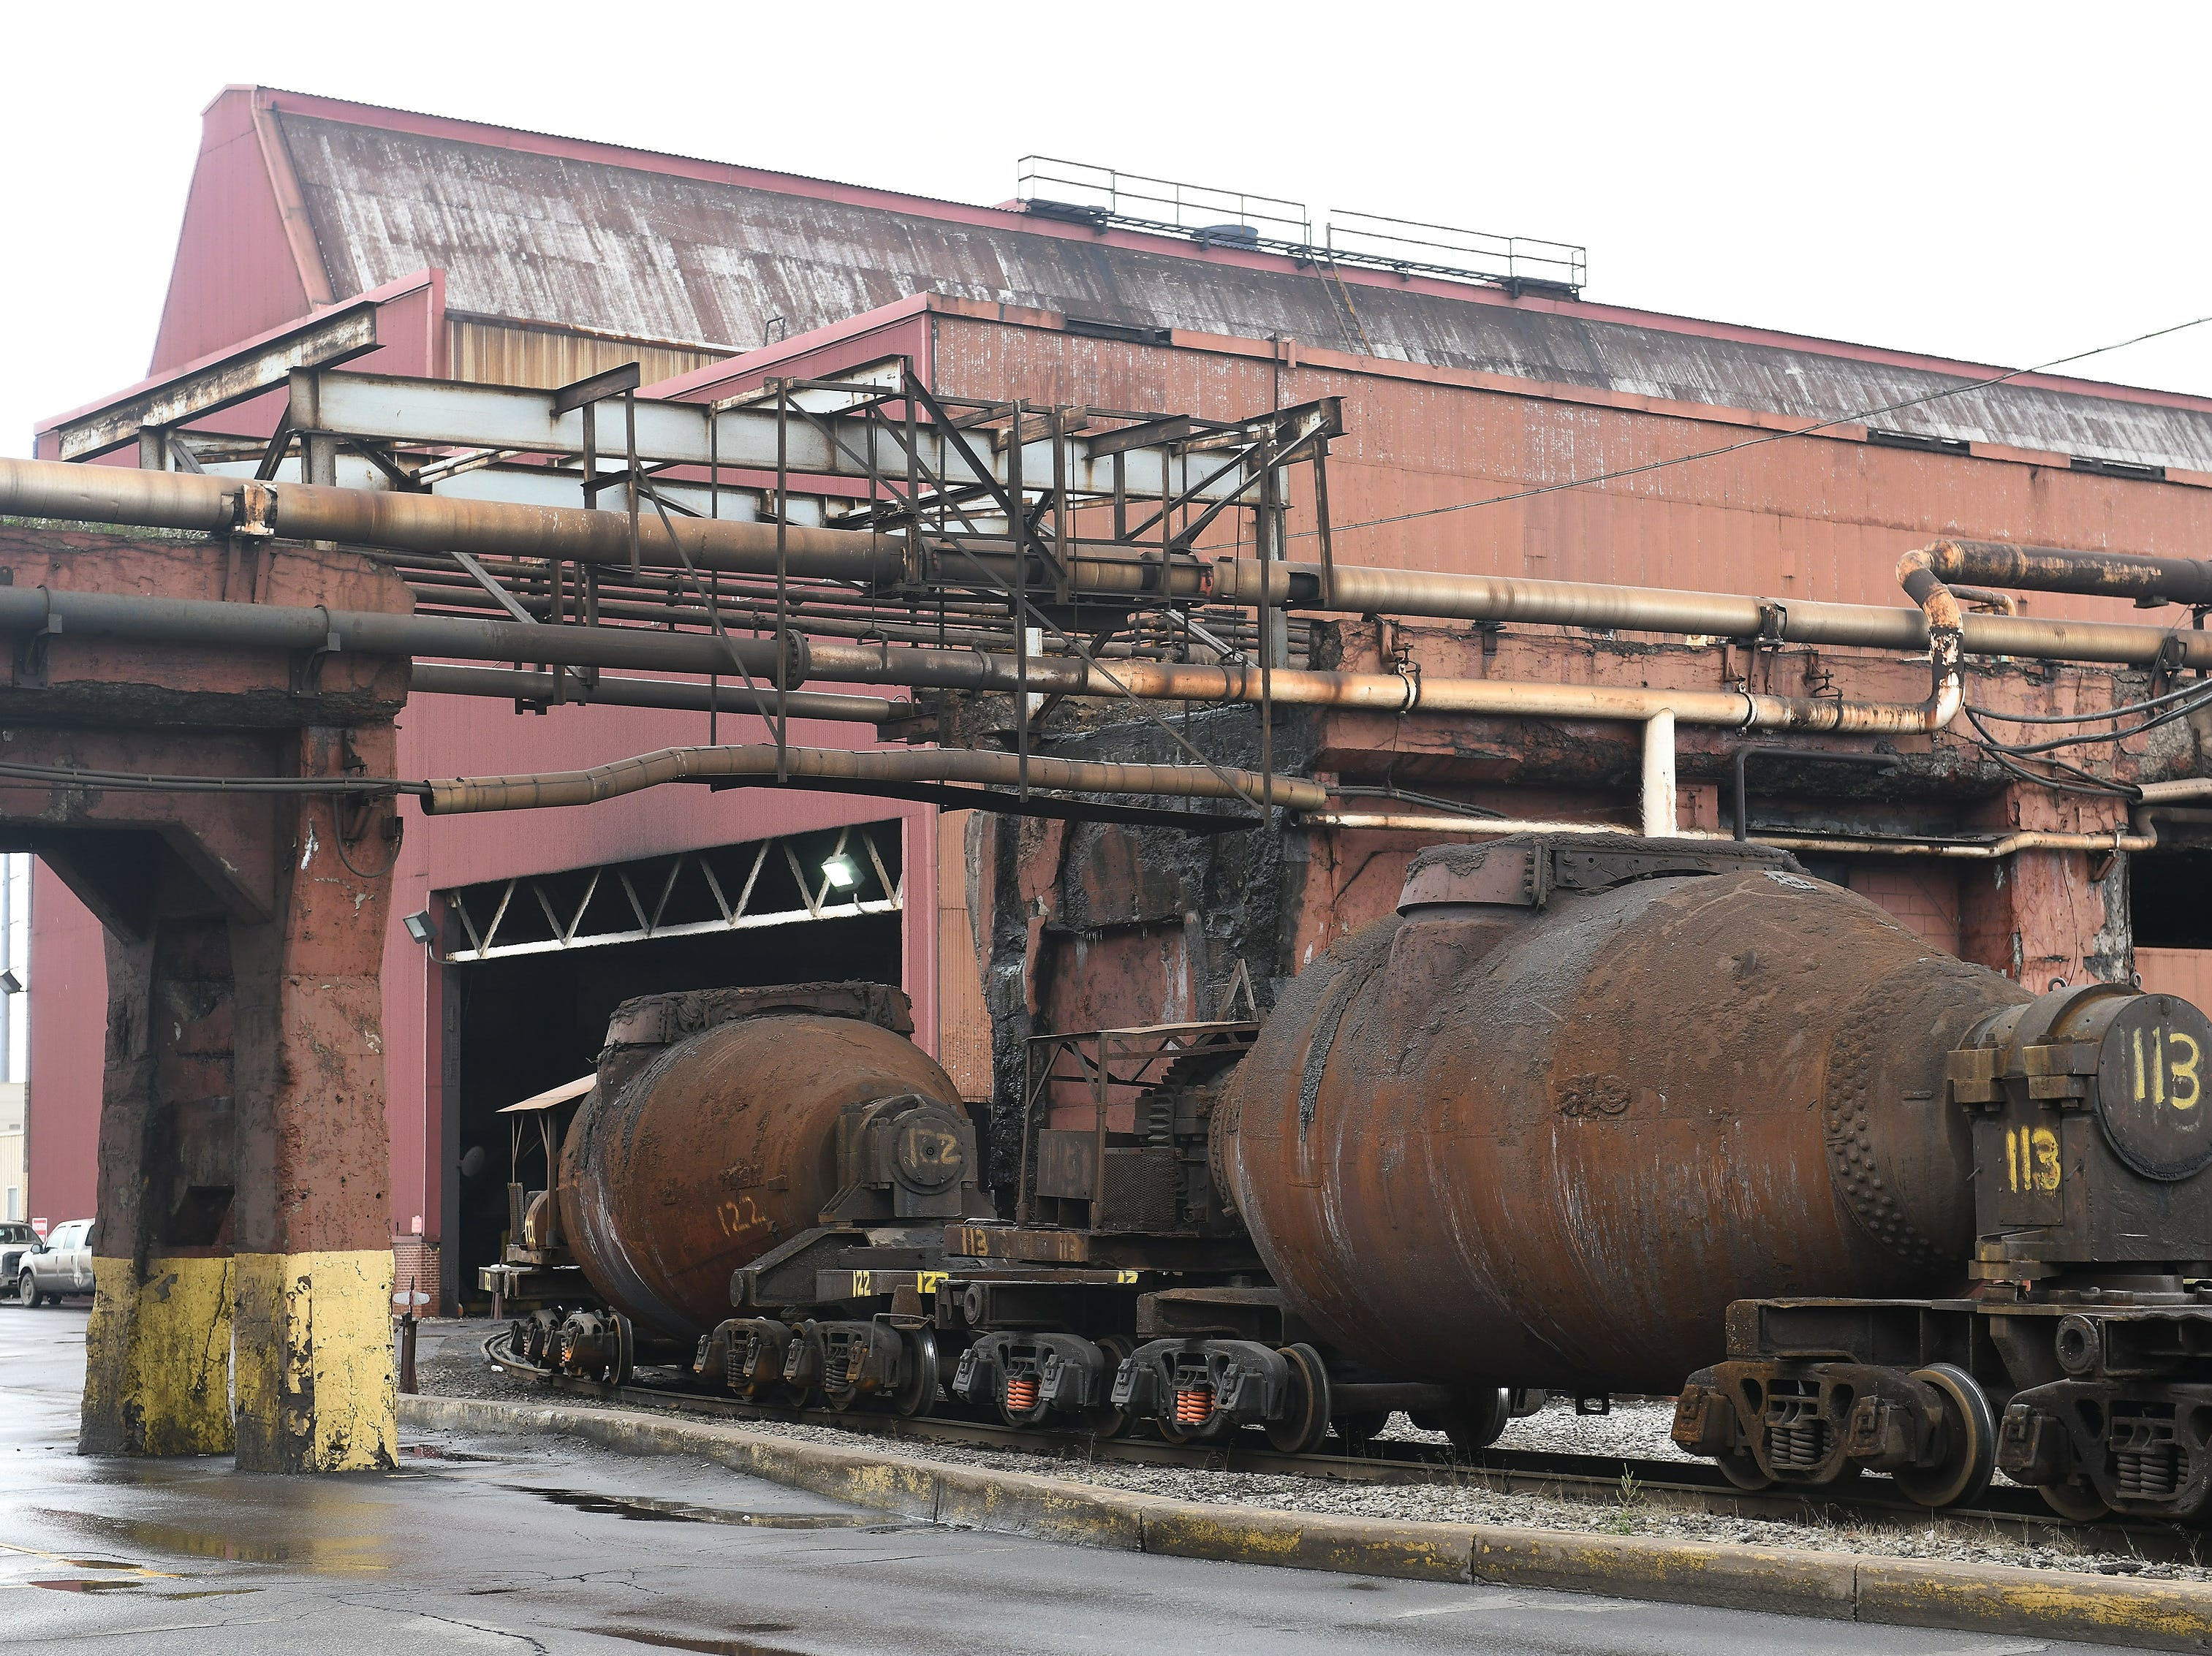 Train cars full of molten steel are used in operations at AK Steel, no longer owned by Ford but located in the Rouge complex.